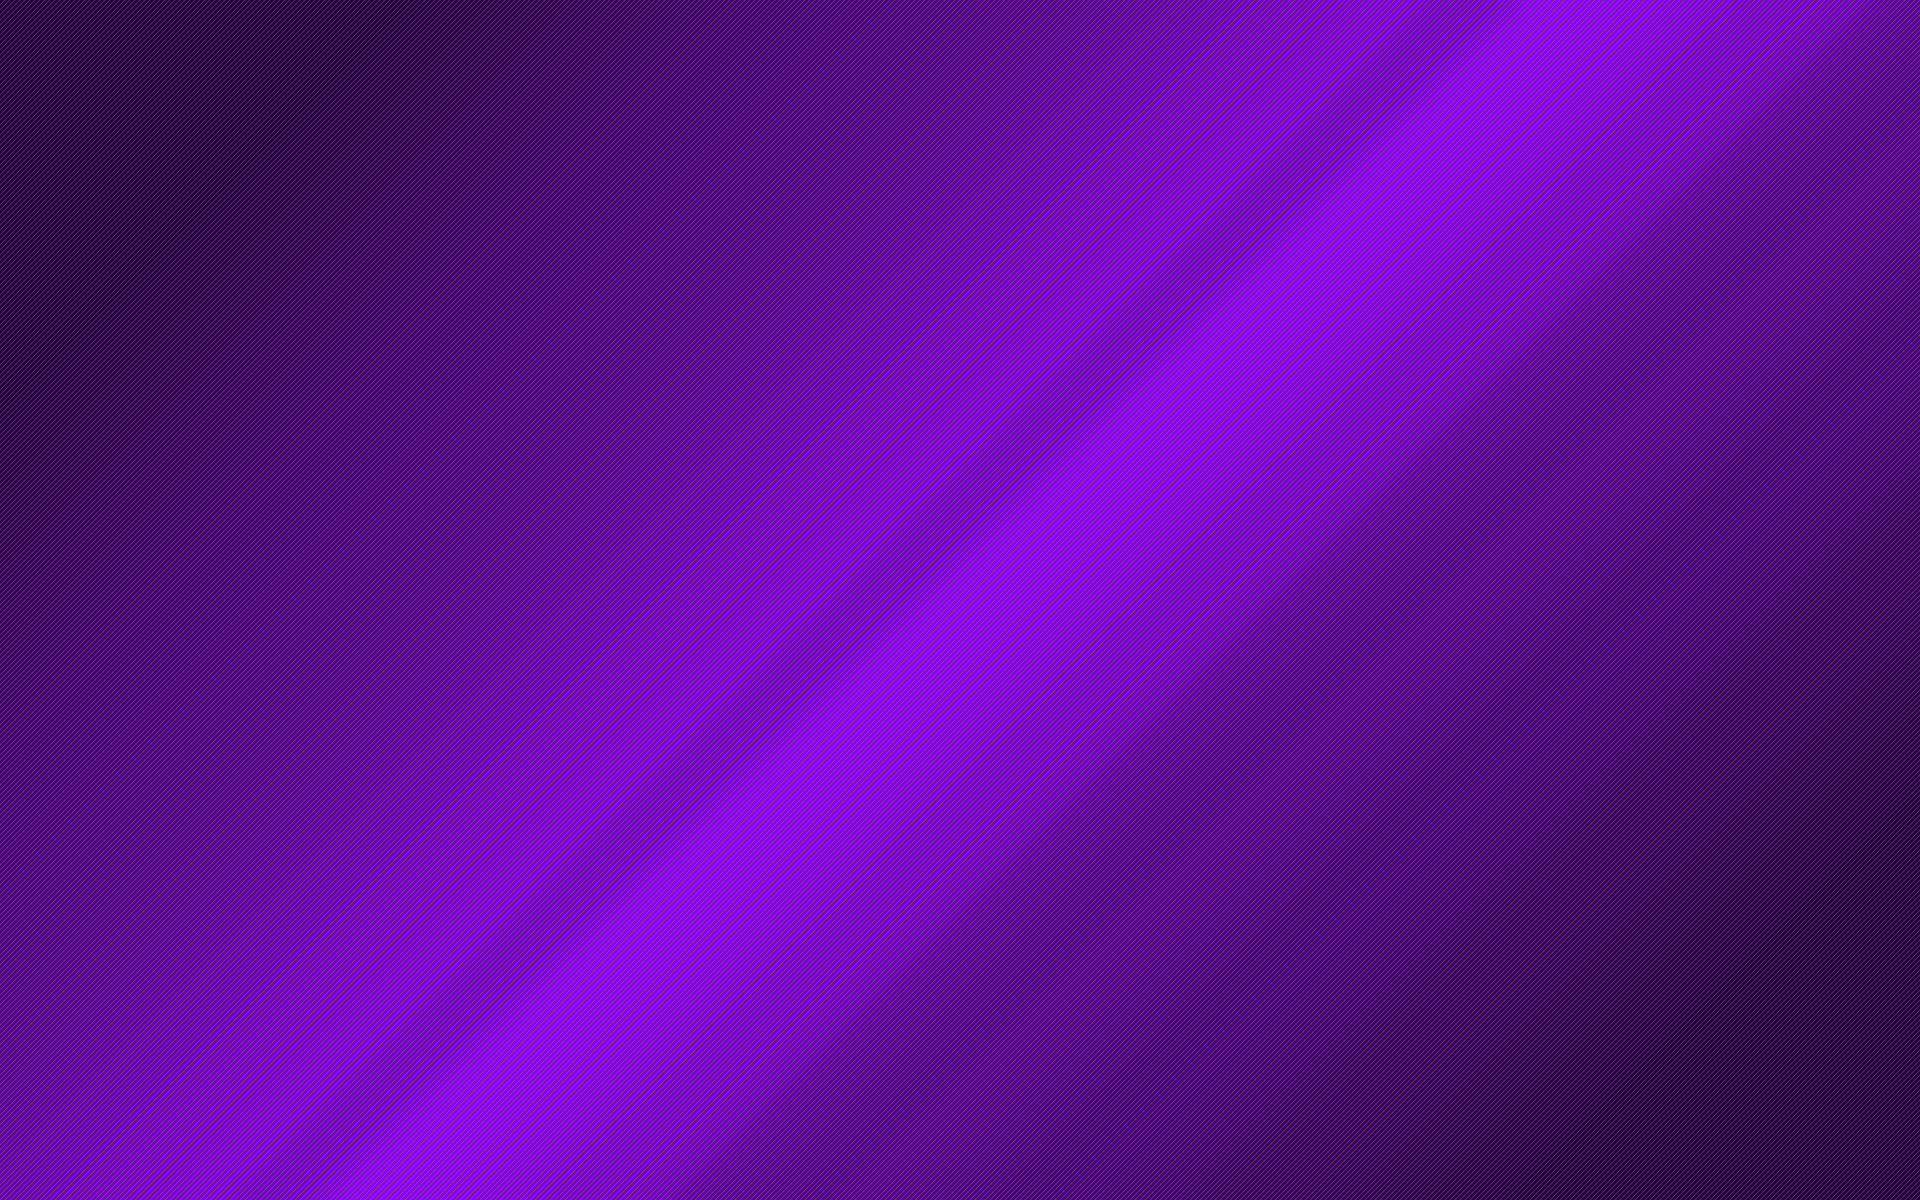 Violet Color Wallpaper High Definition High Quality Widescreen